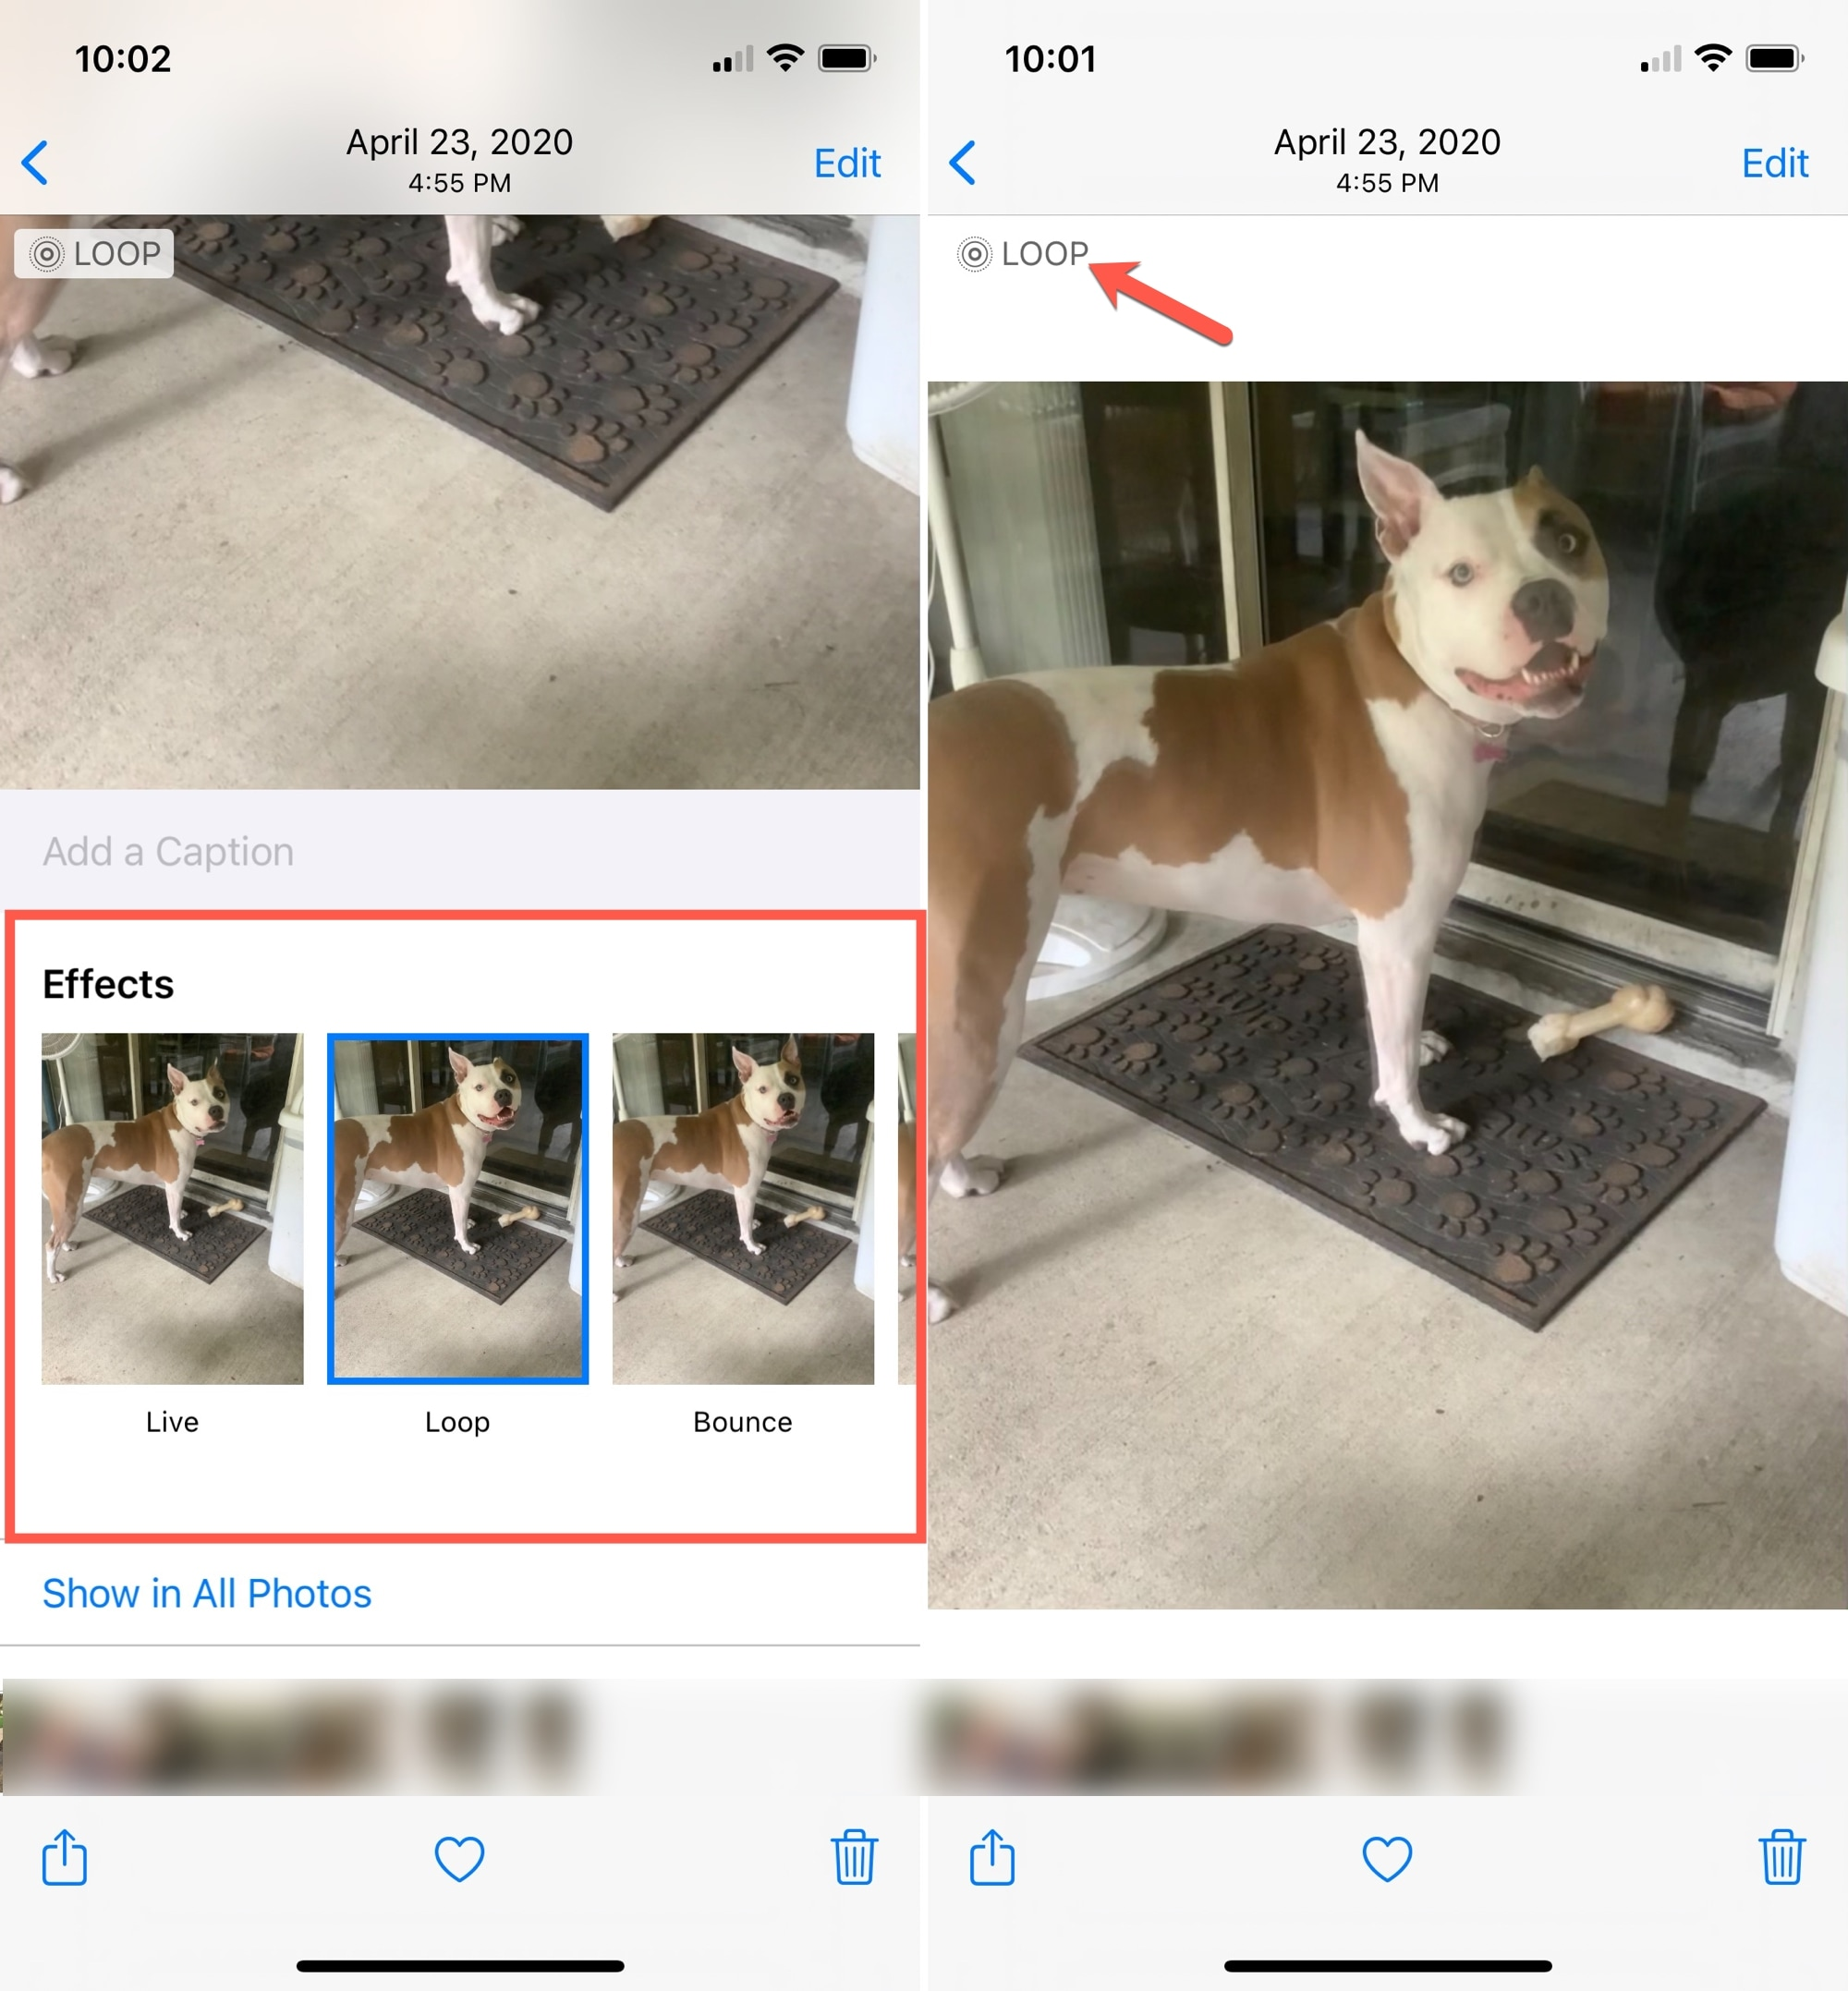 Add Loop to Live Photo on iPhone